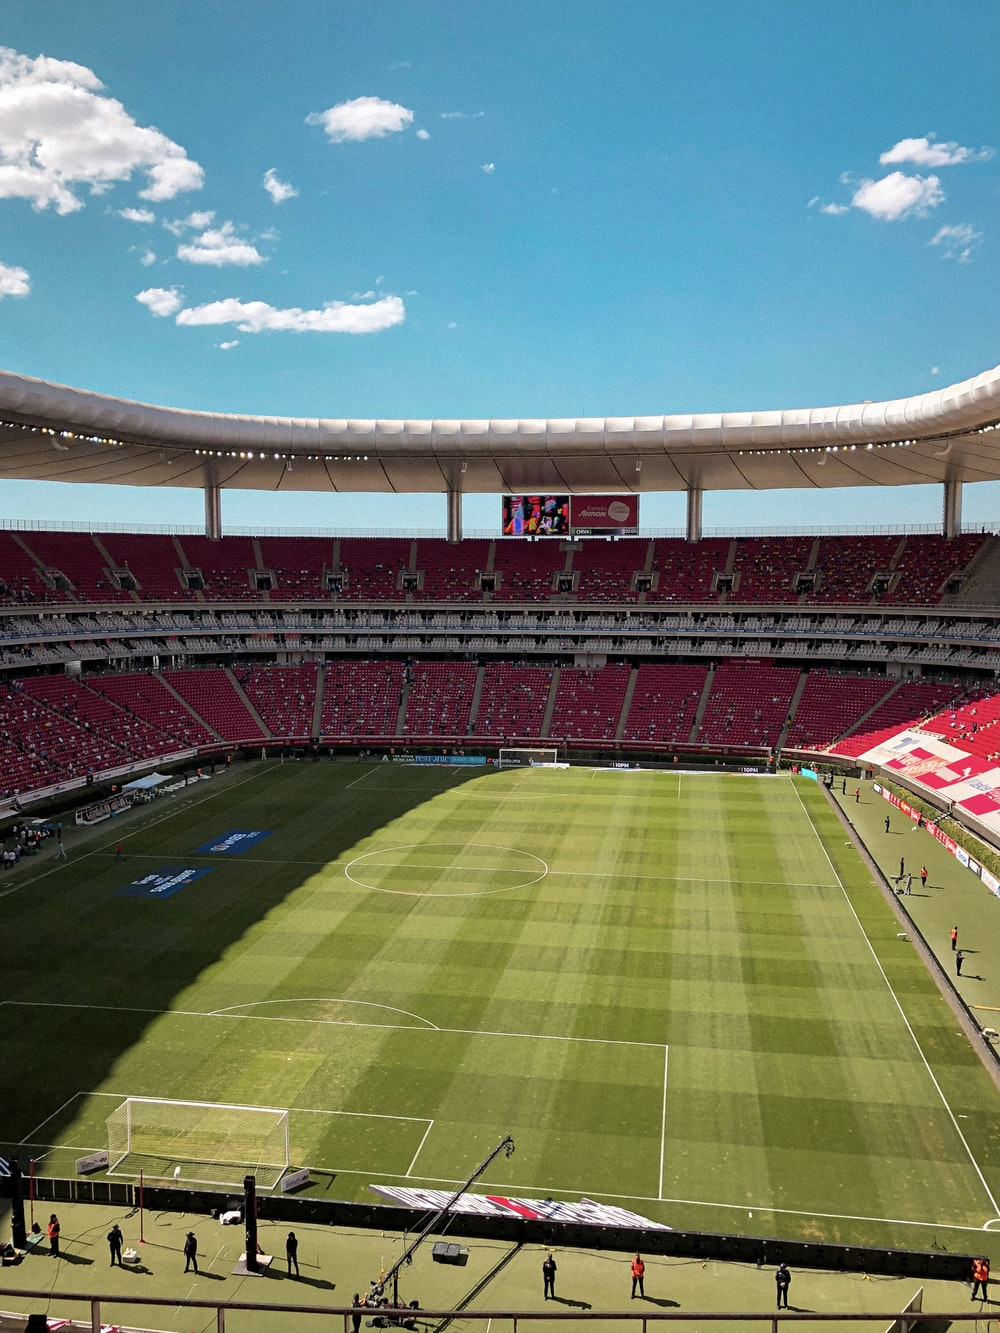 green and brown football stadium under blue sky during daytime